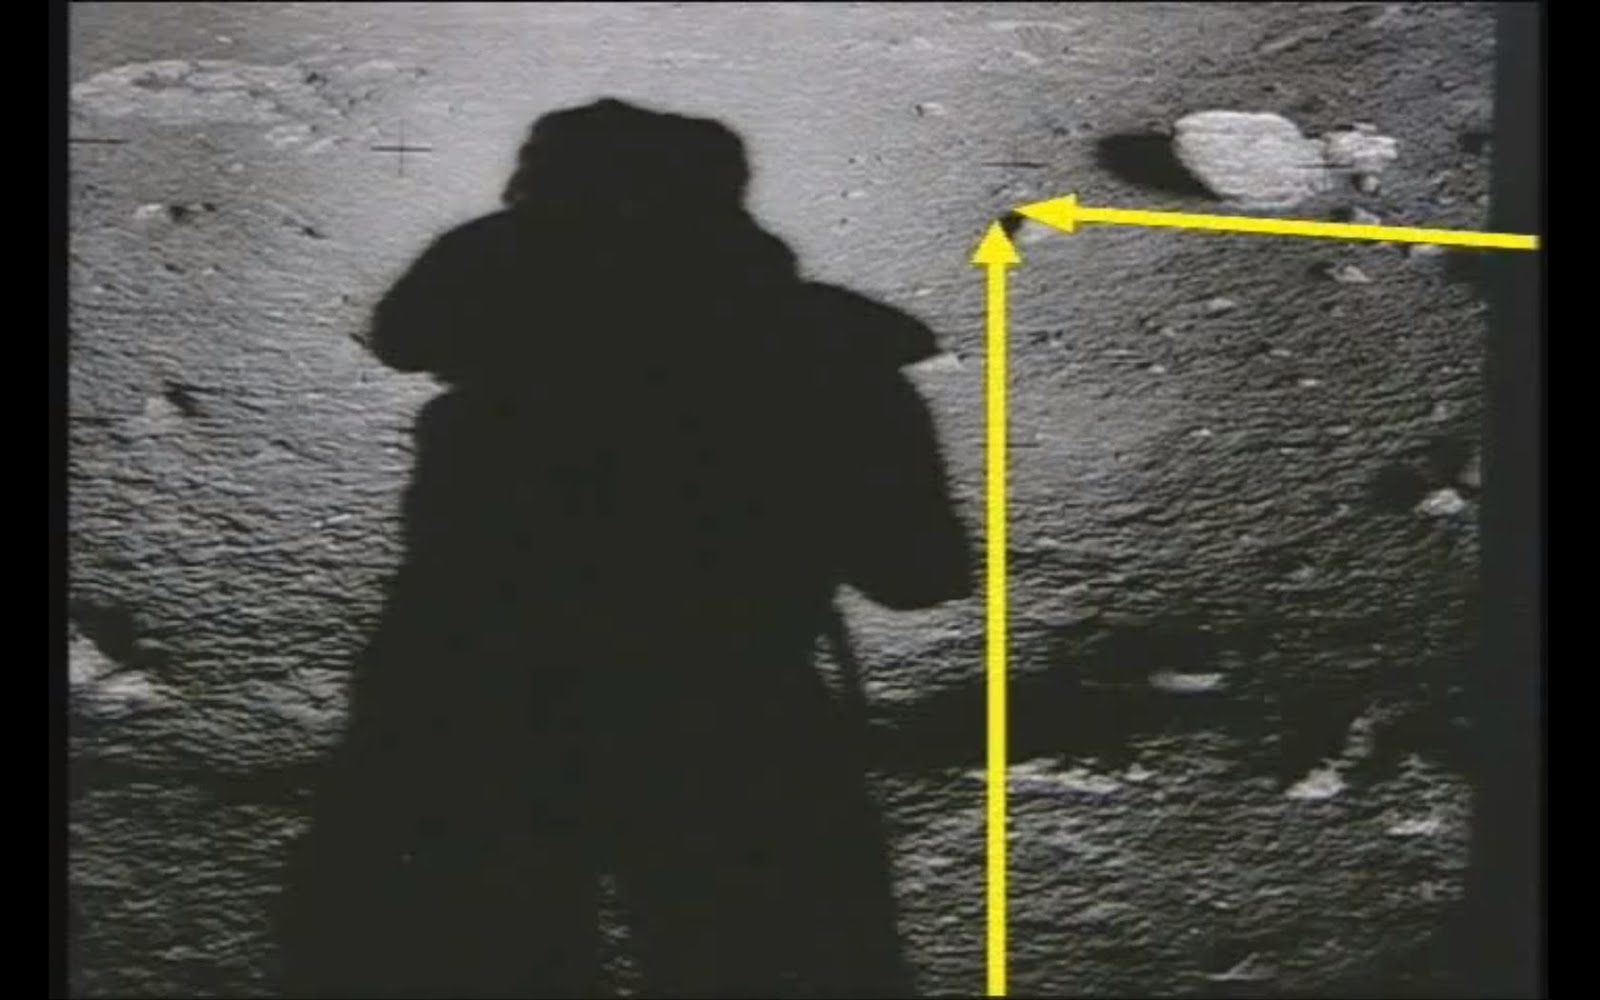 moon landing conspiracy shadows - photo #9